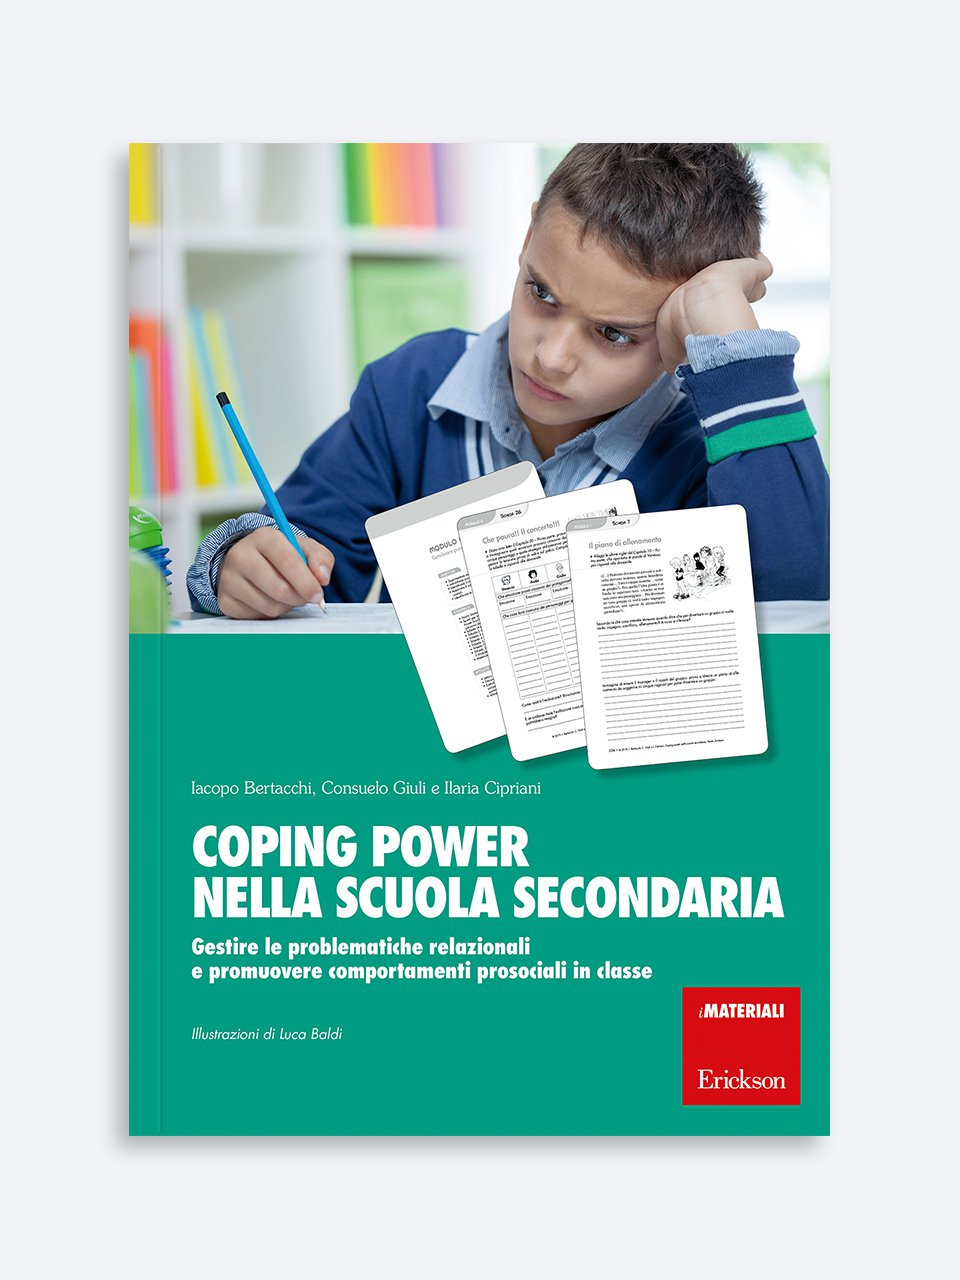 Coping Power nella scuola secondaria - Sviluppare l'intelligenza emotiva - App e software - Erickson